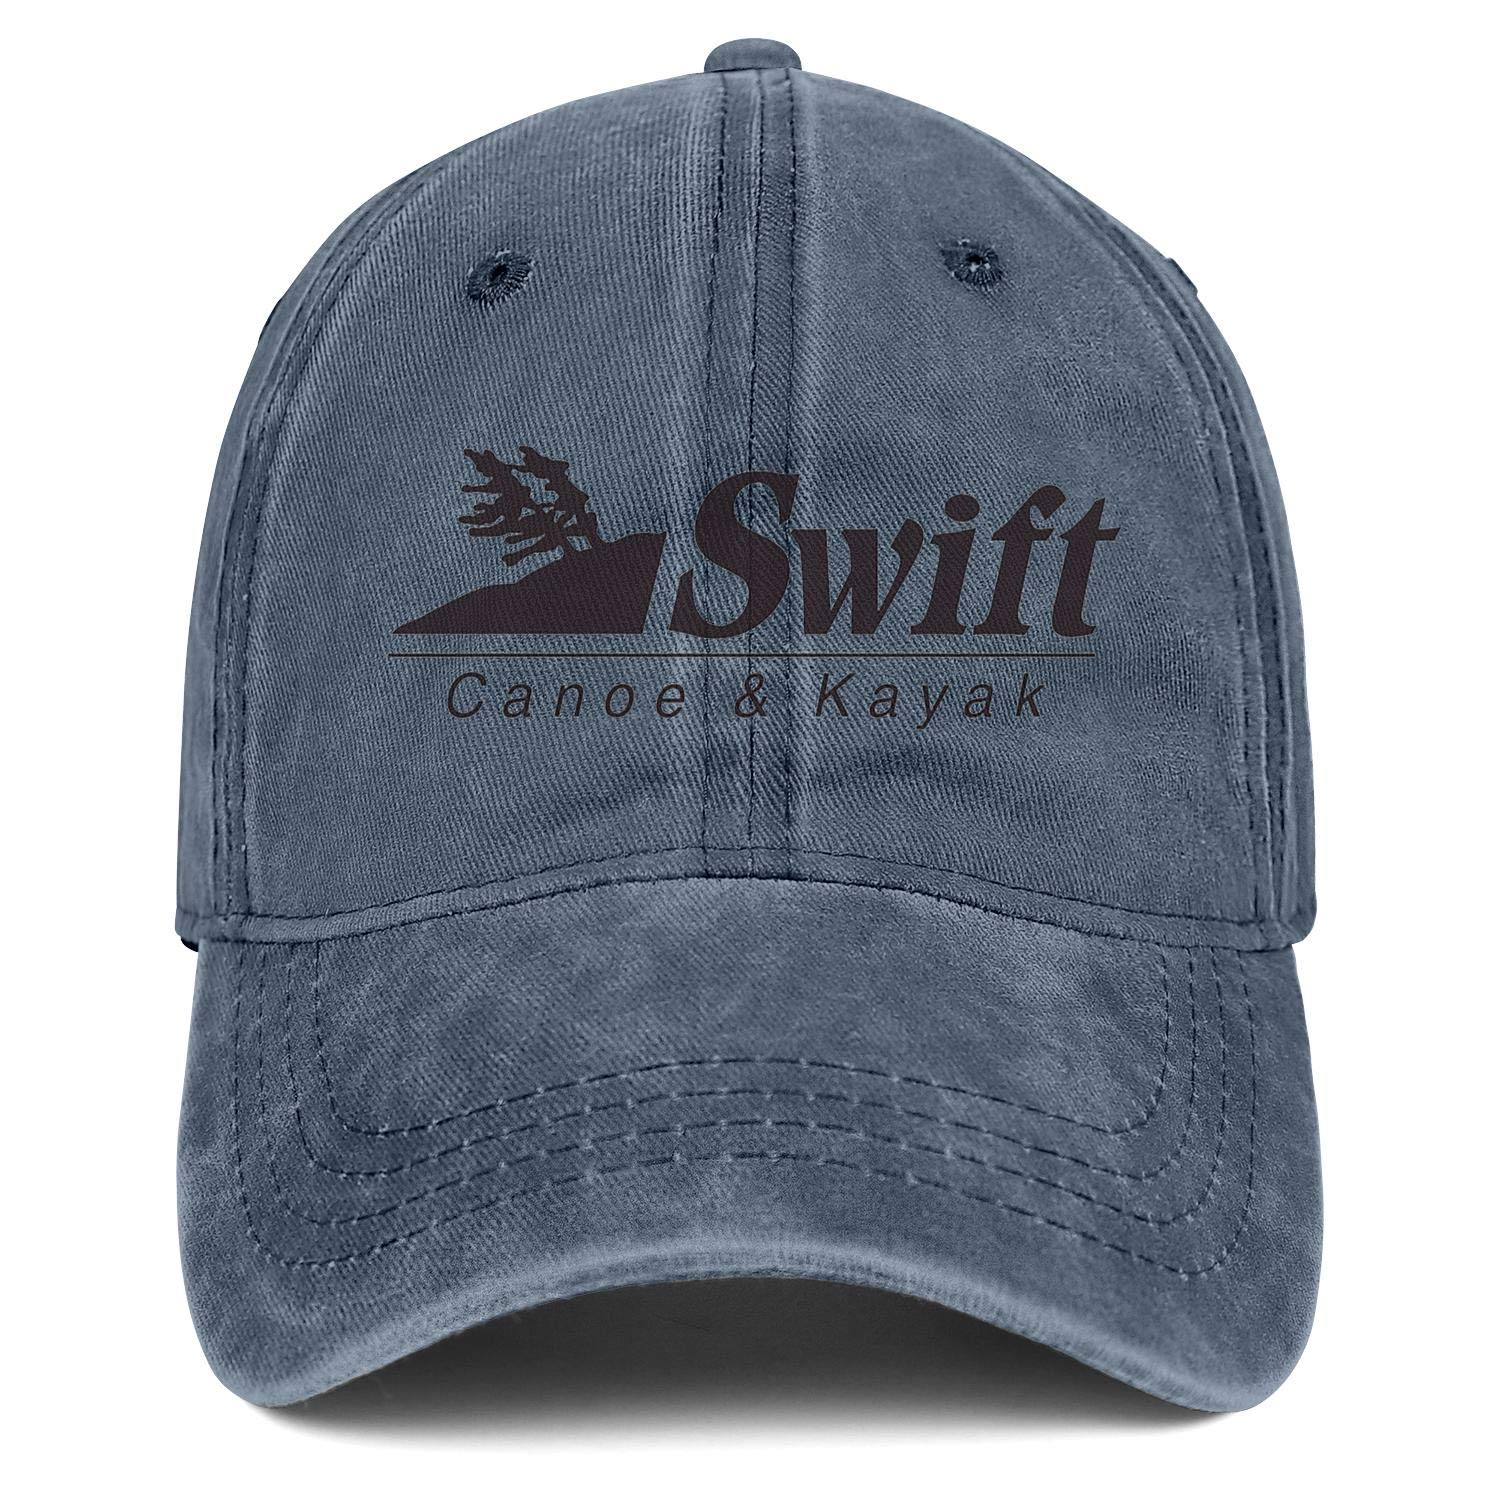 Dad Hats Swift-Canoe-Logo-01 Snapback Mens Women Adjustable Denim Rock Caps